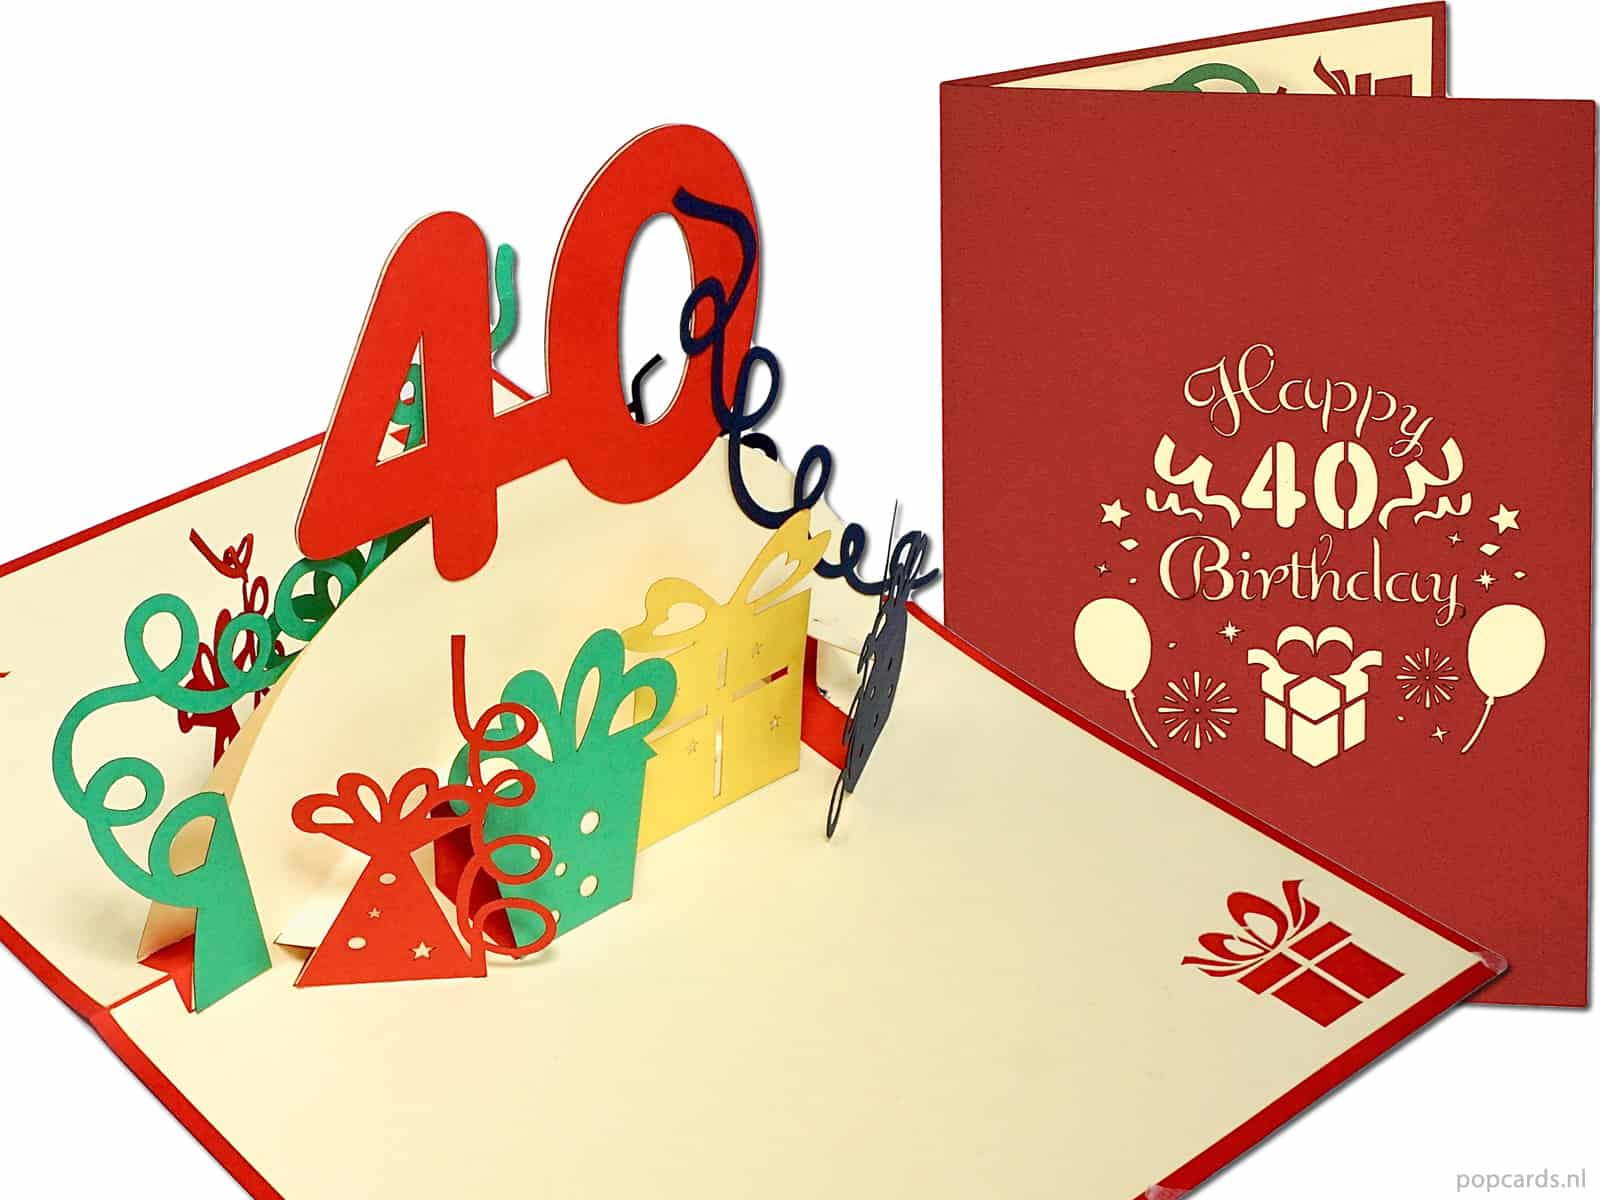 Pleasant Birthday Card 40 Years With Big Pop Up Age Popcards Nl Funny Birthday Cards Online Inifofree Goldxyz